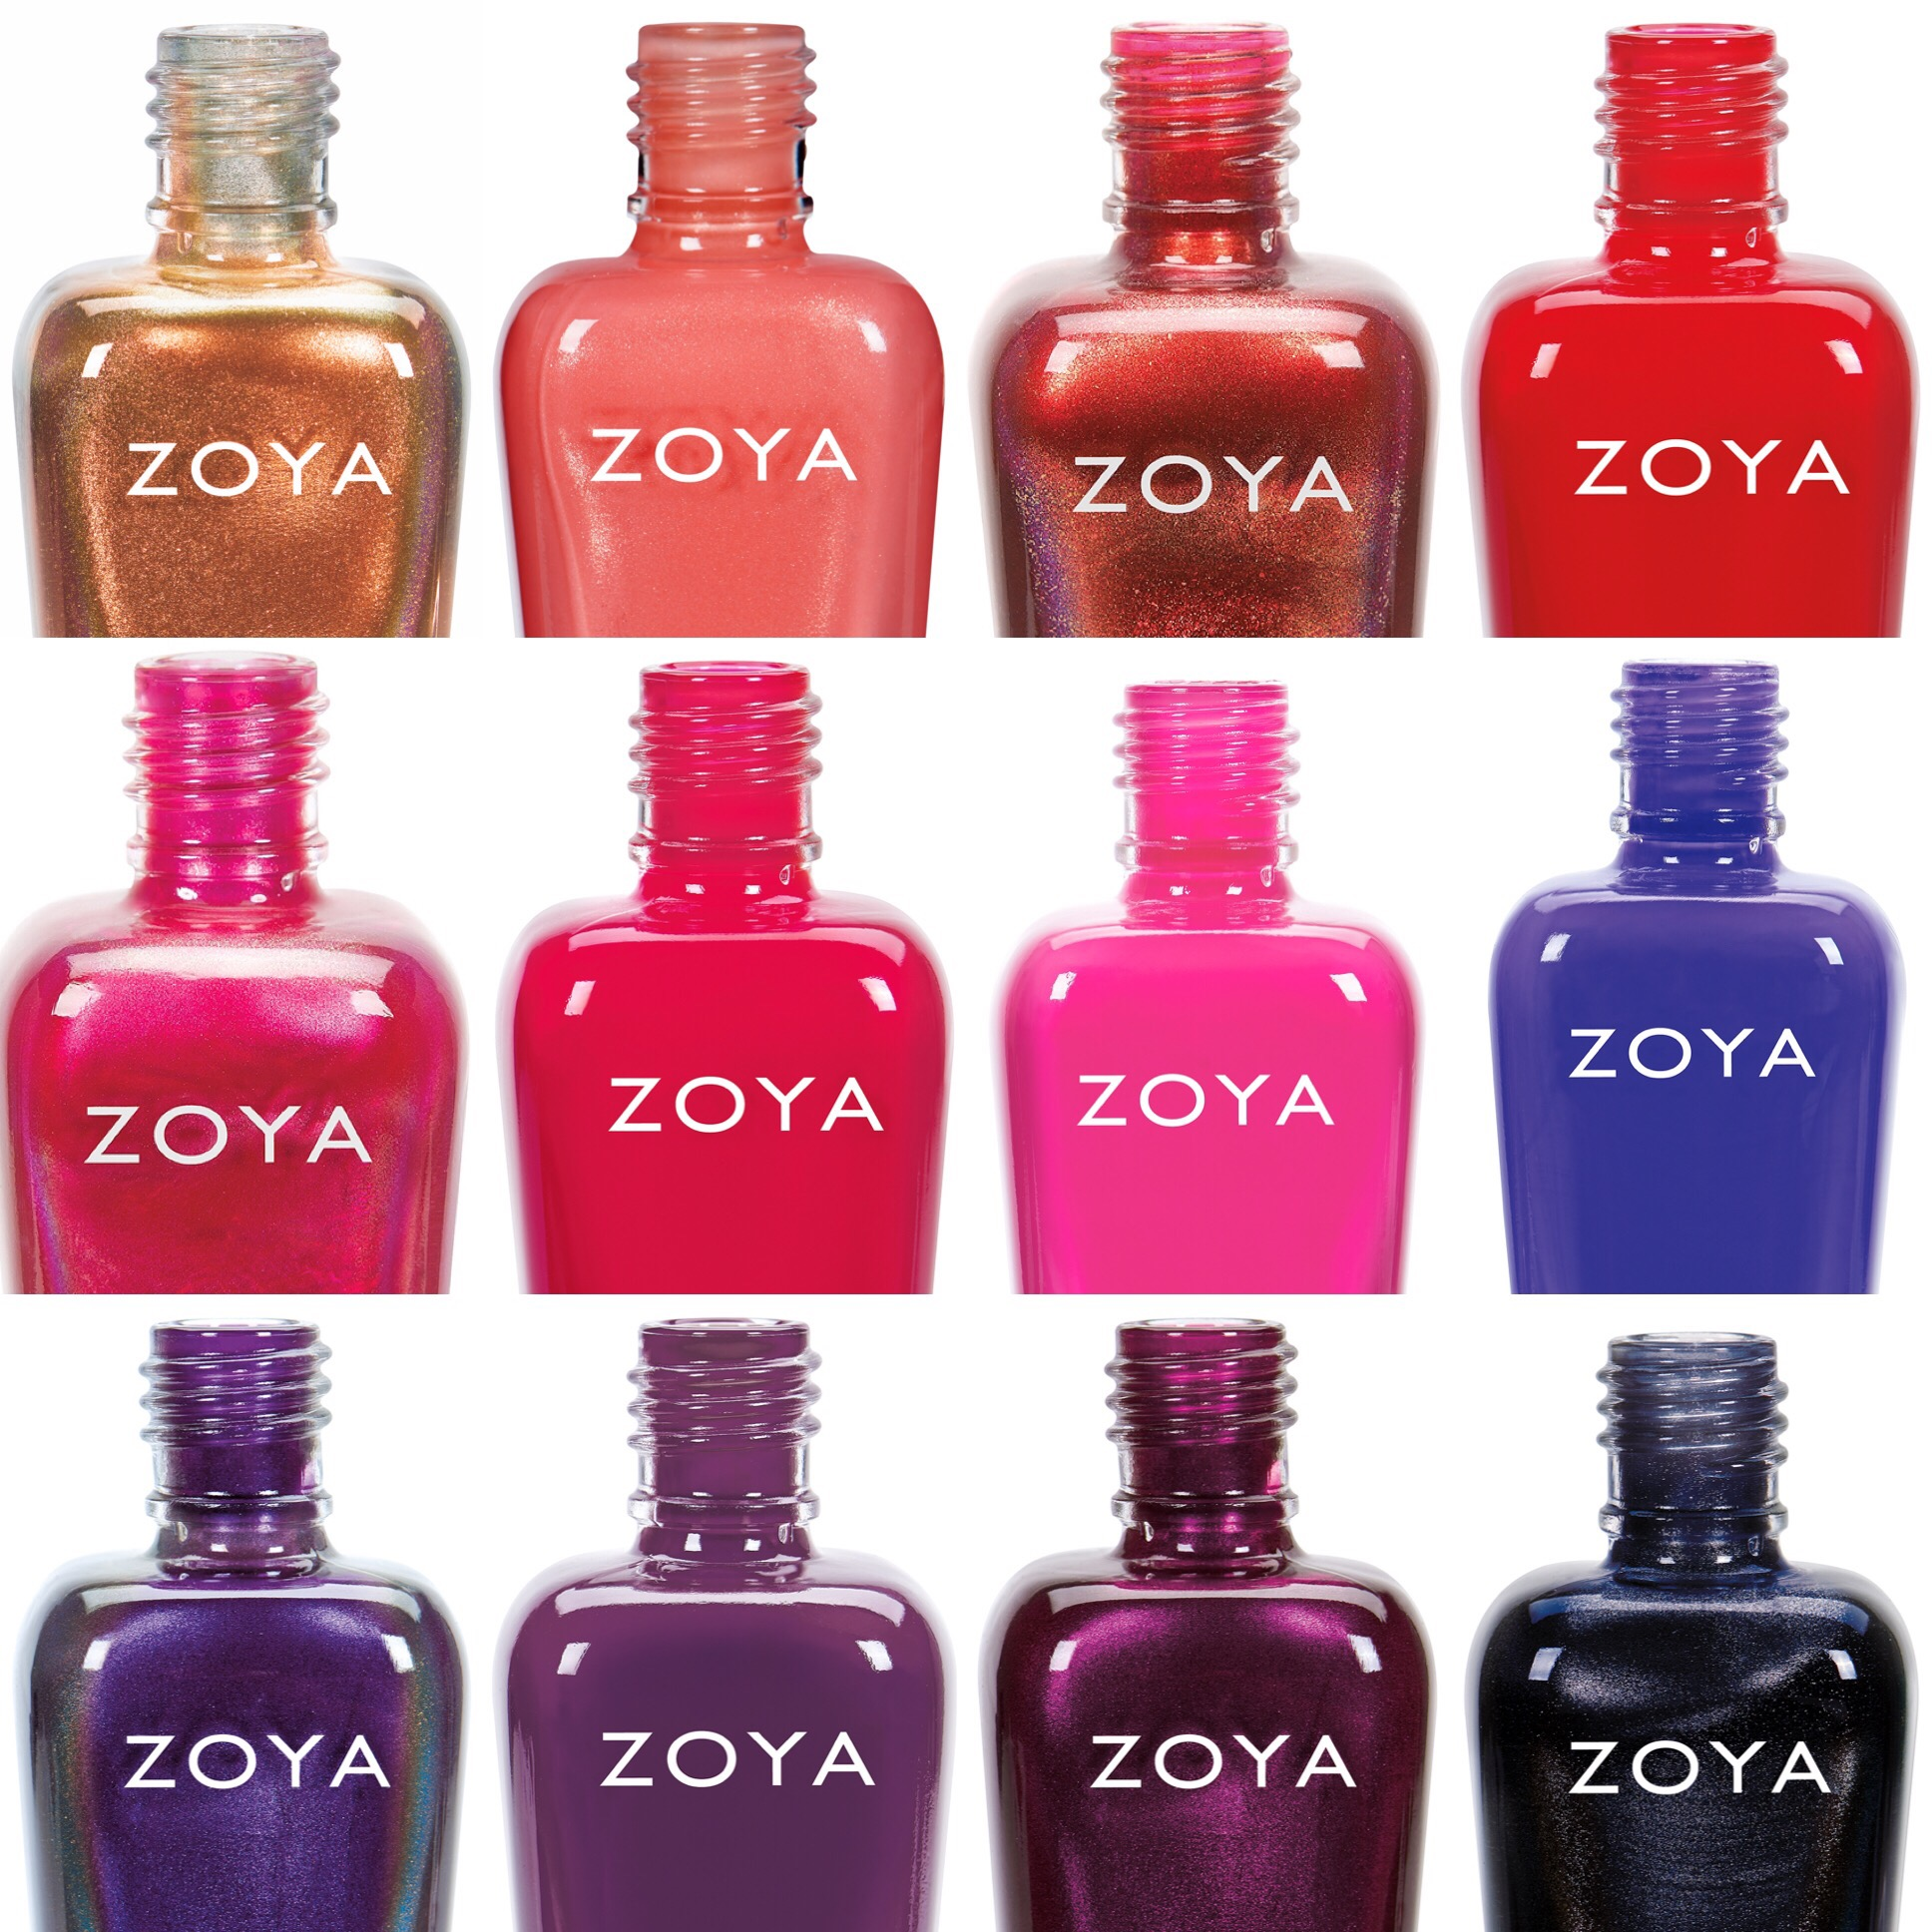 Zoya Party Girls Winter/Holiday 2017